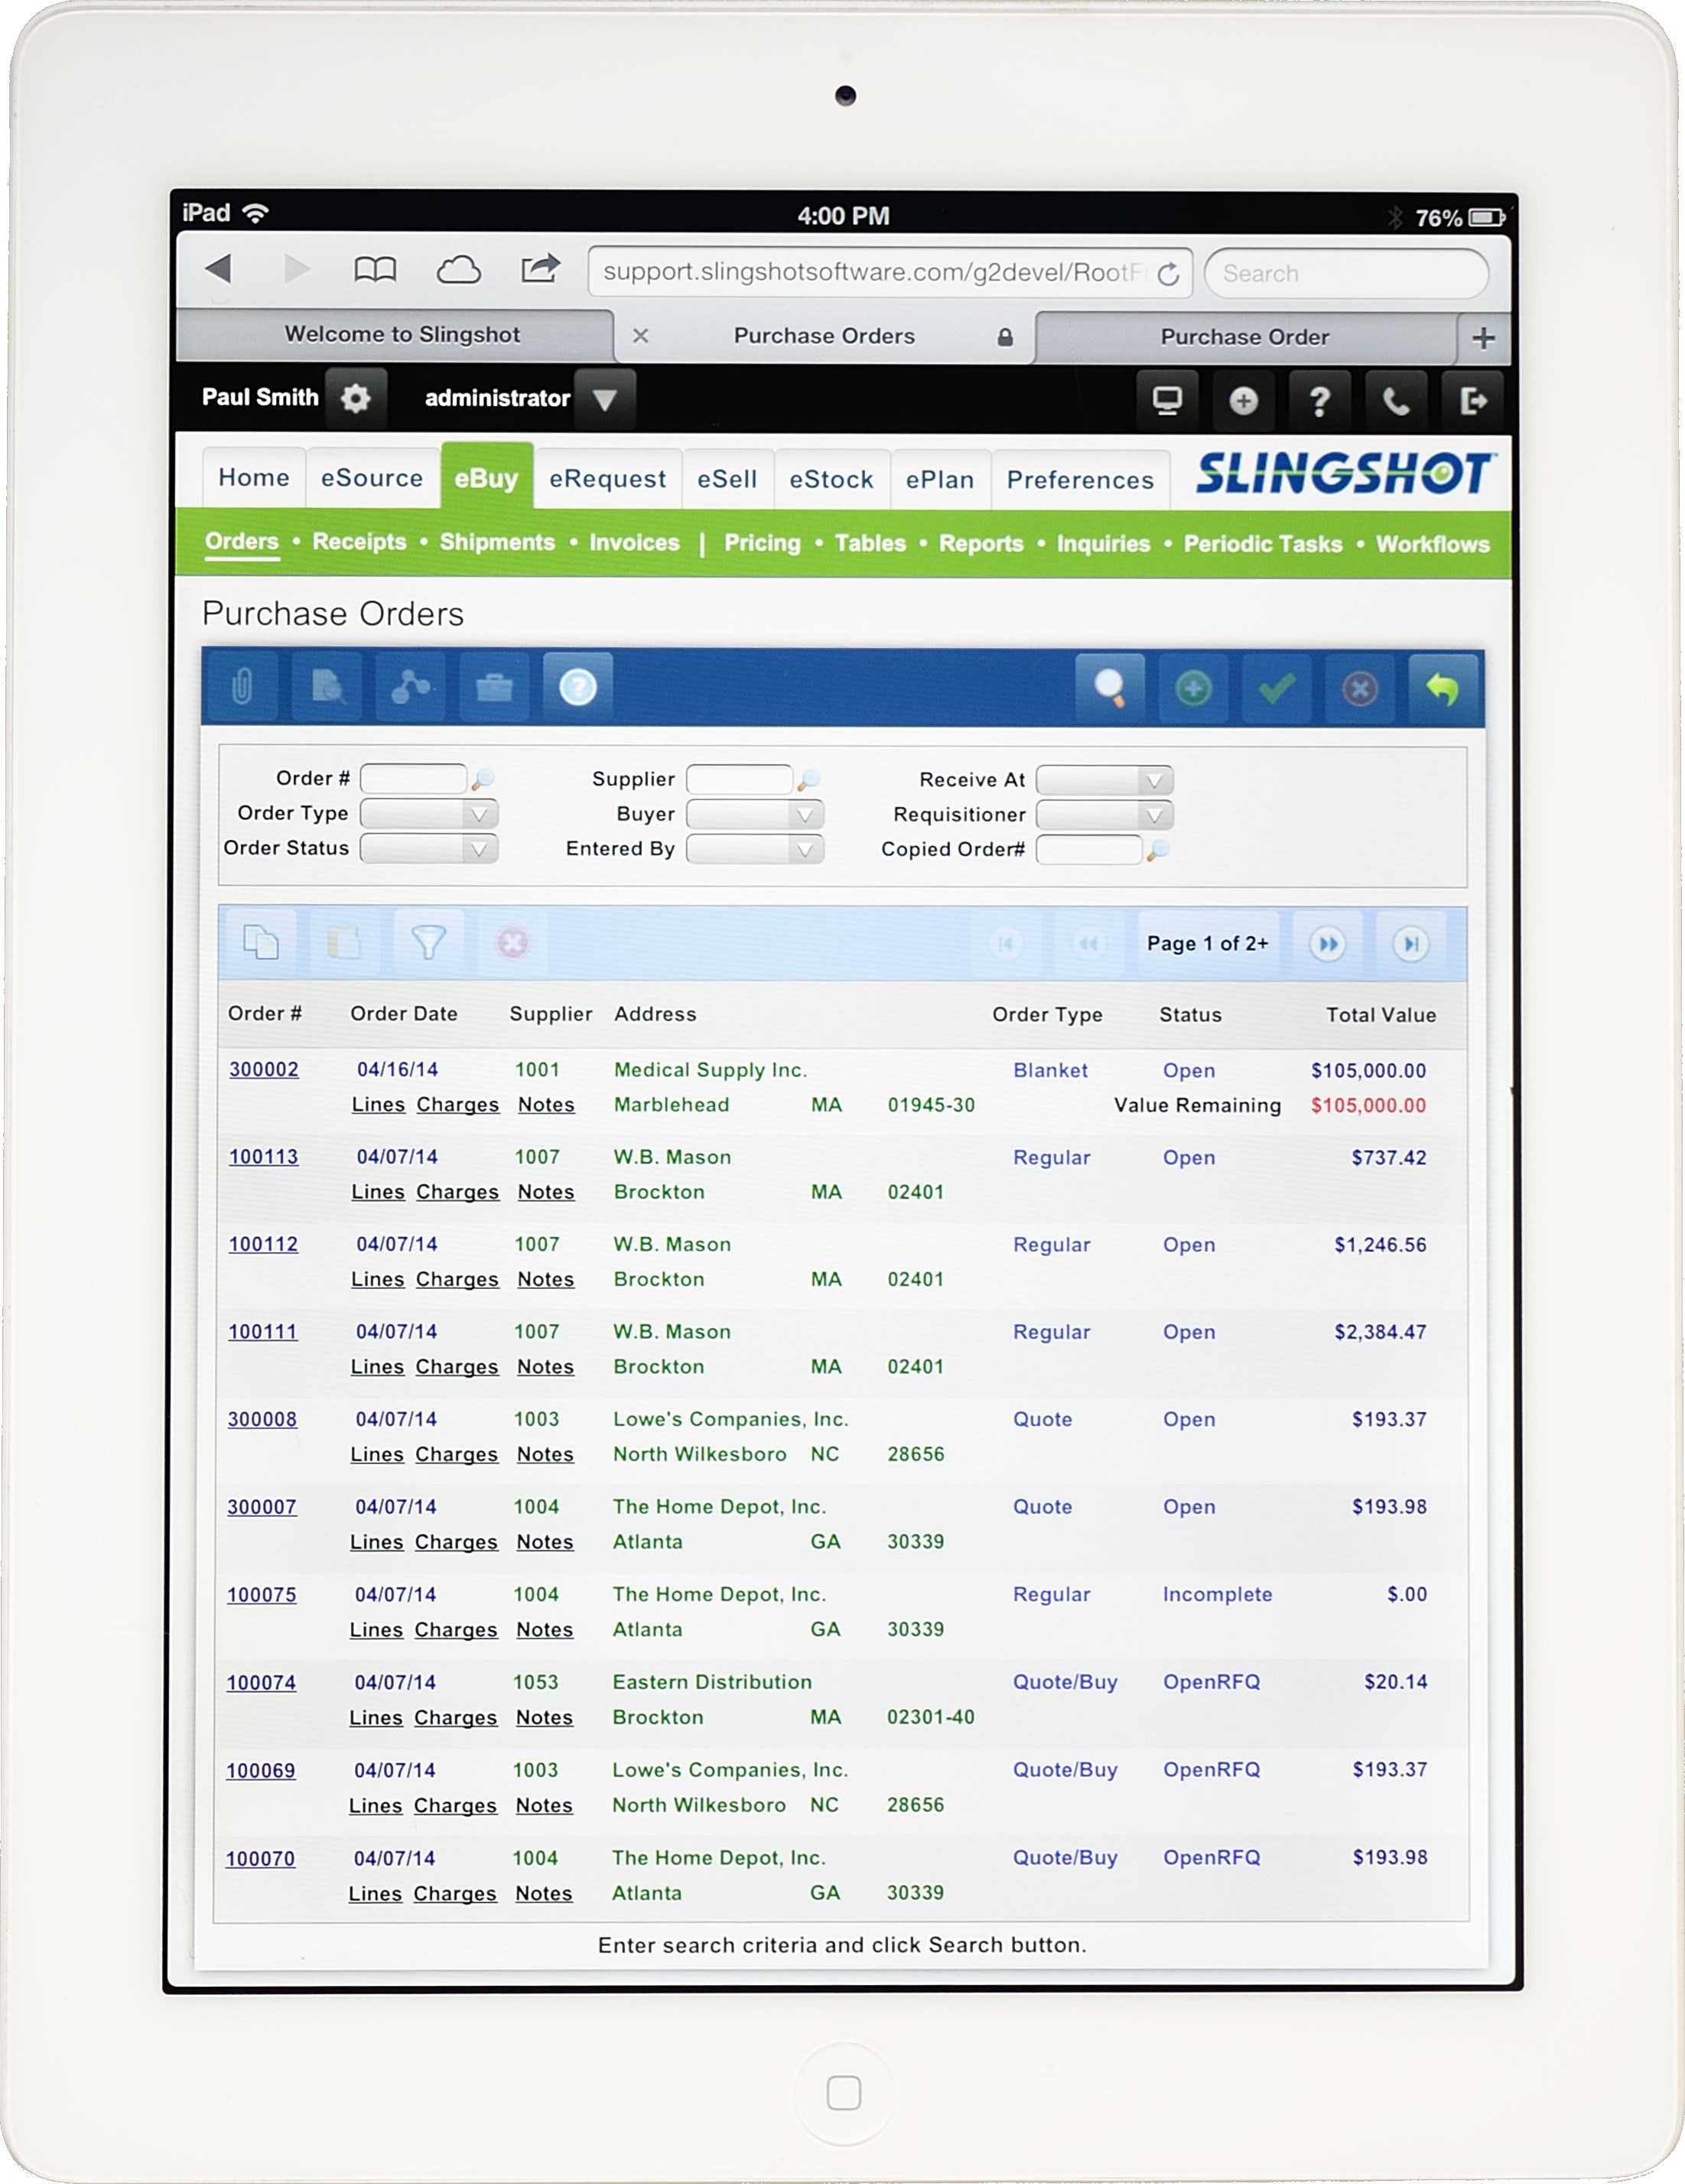 Purchase order inquiry (Tablet)